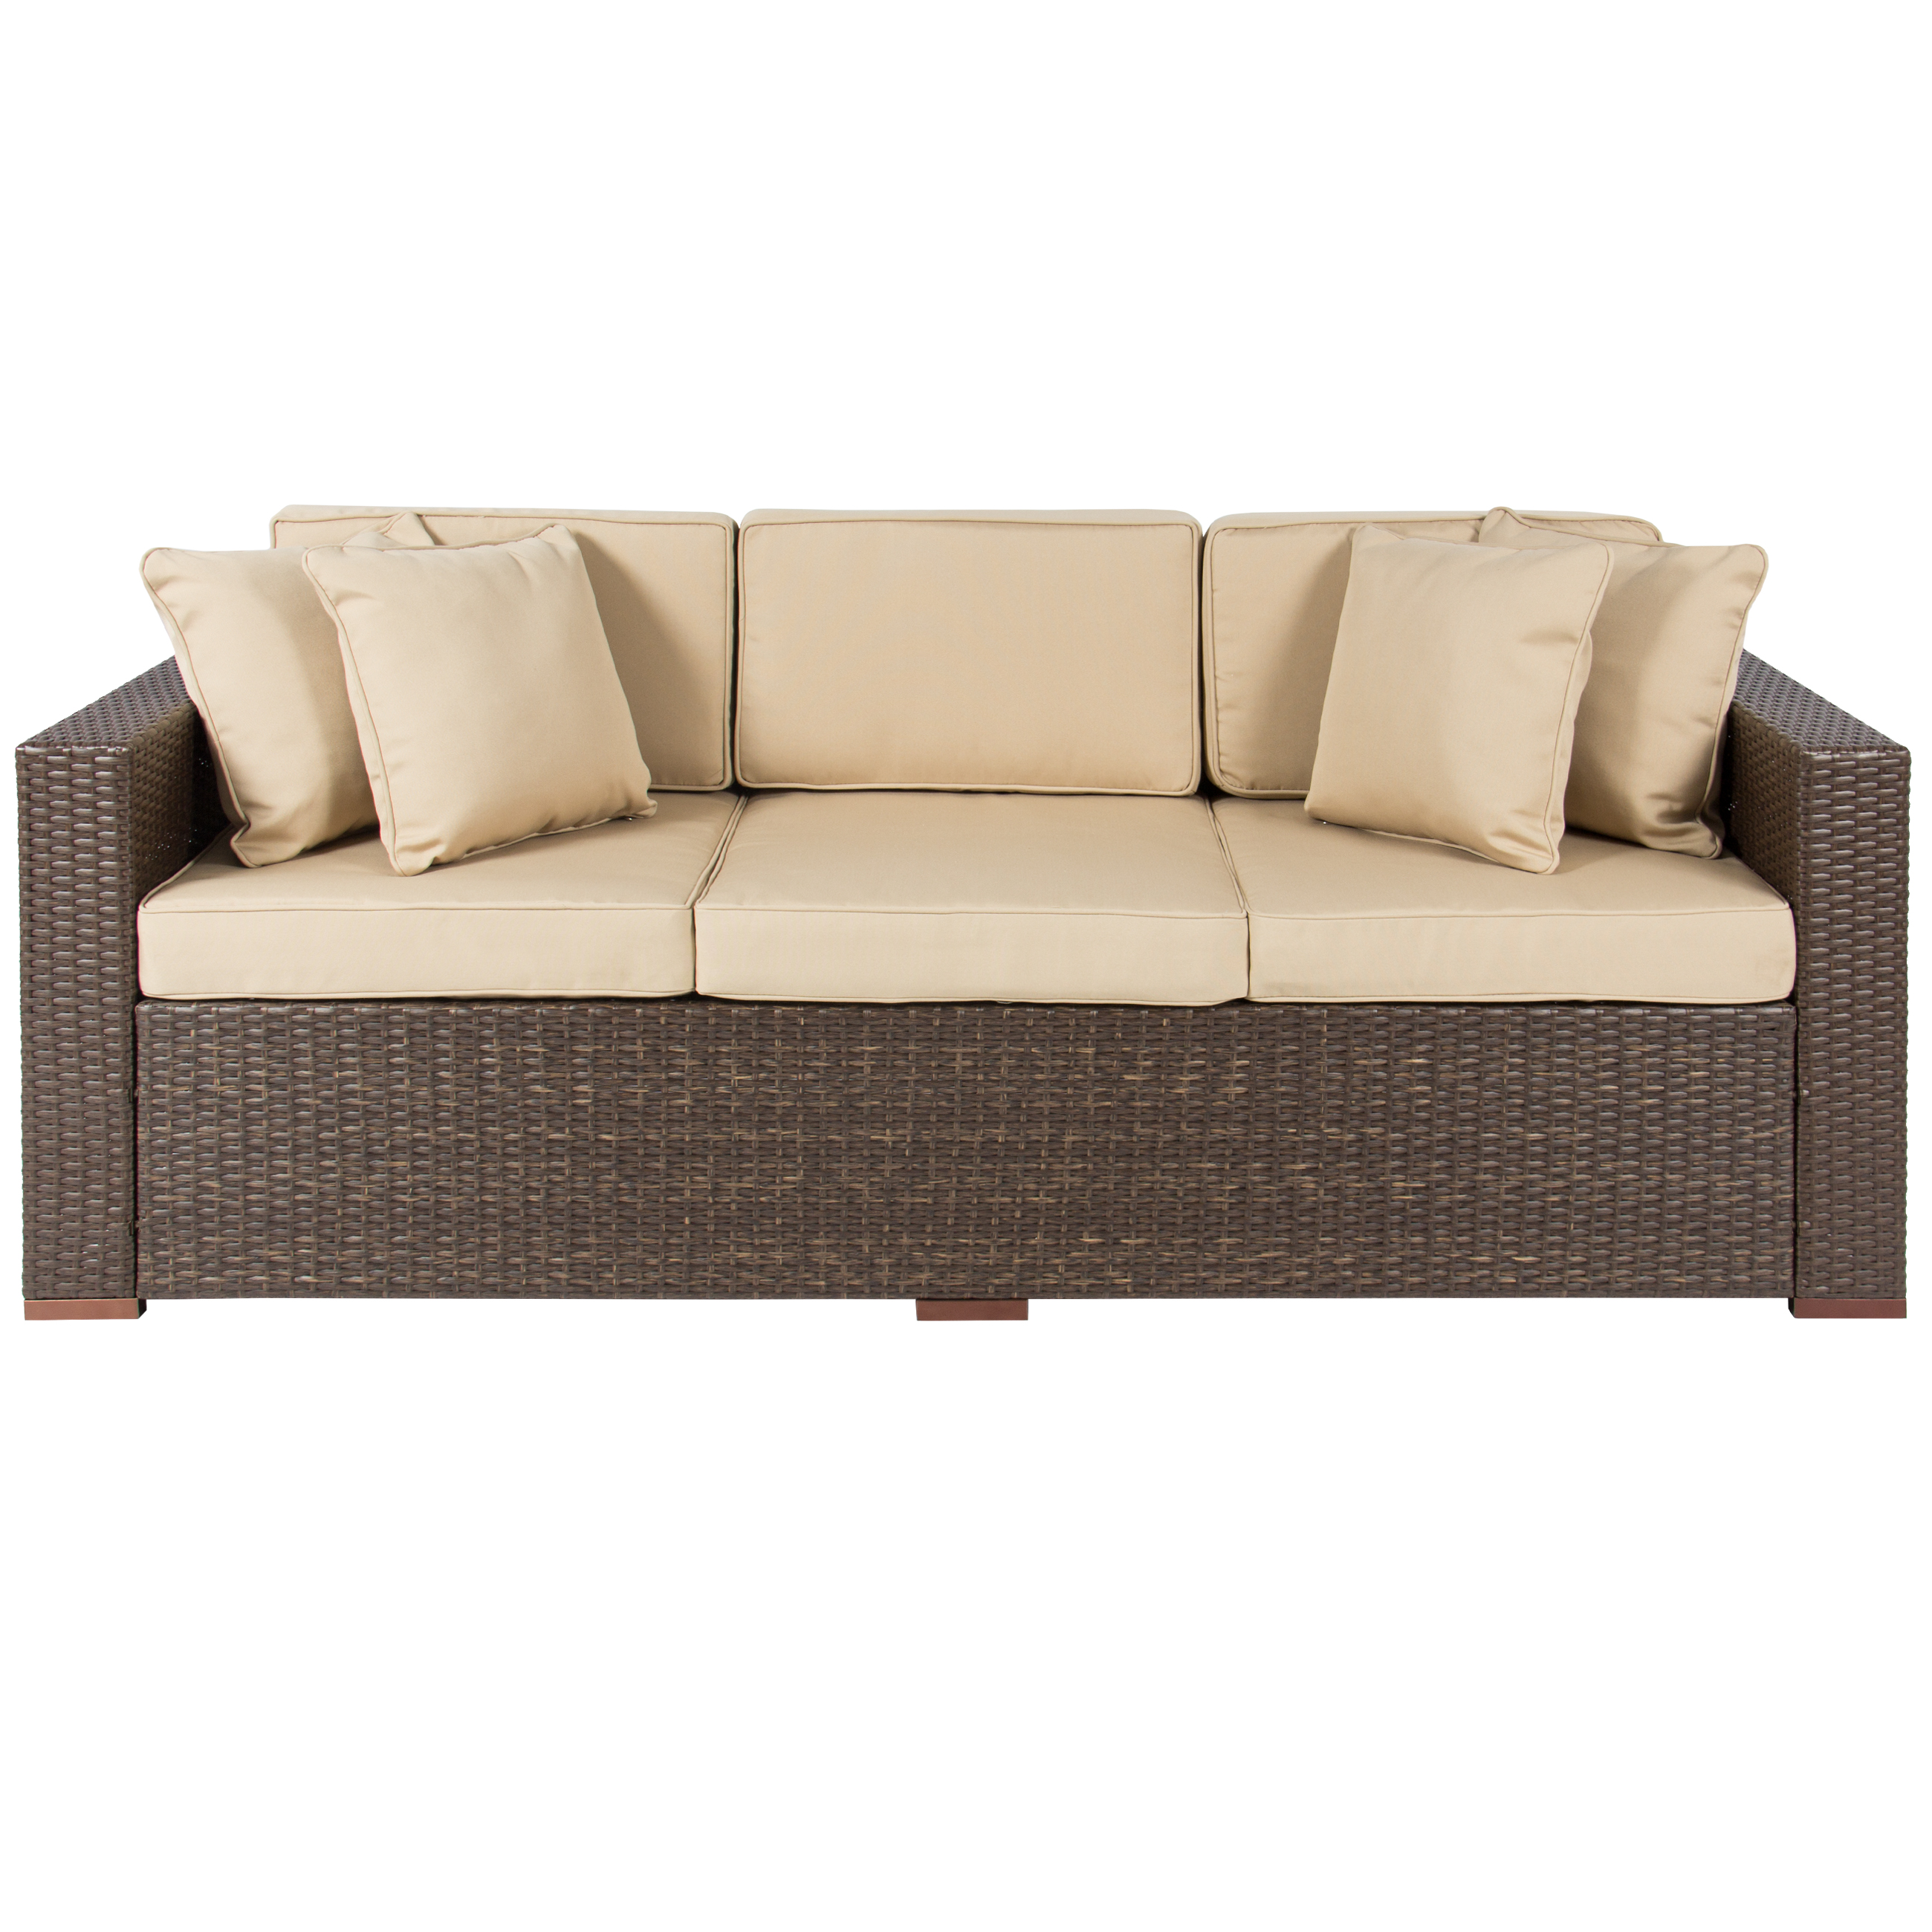 Outdoor wicker patio furniture sofa 3 seater luxury comfort brown wicker couch ebay Garden loveseat